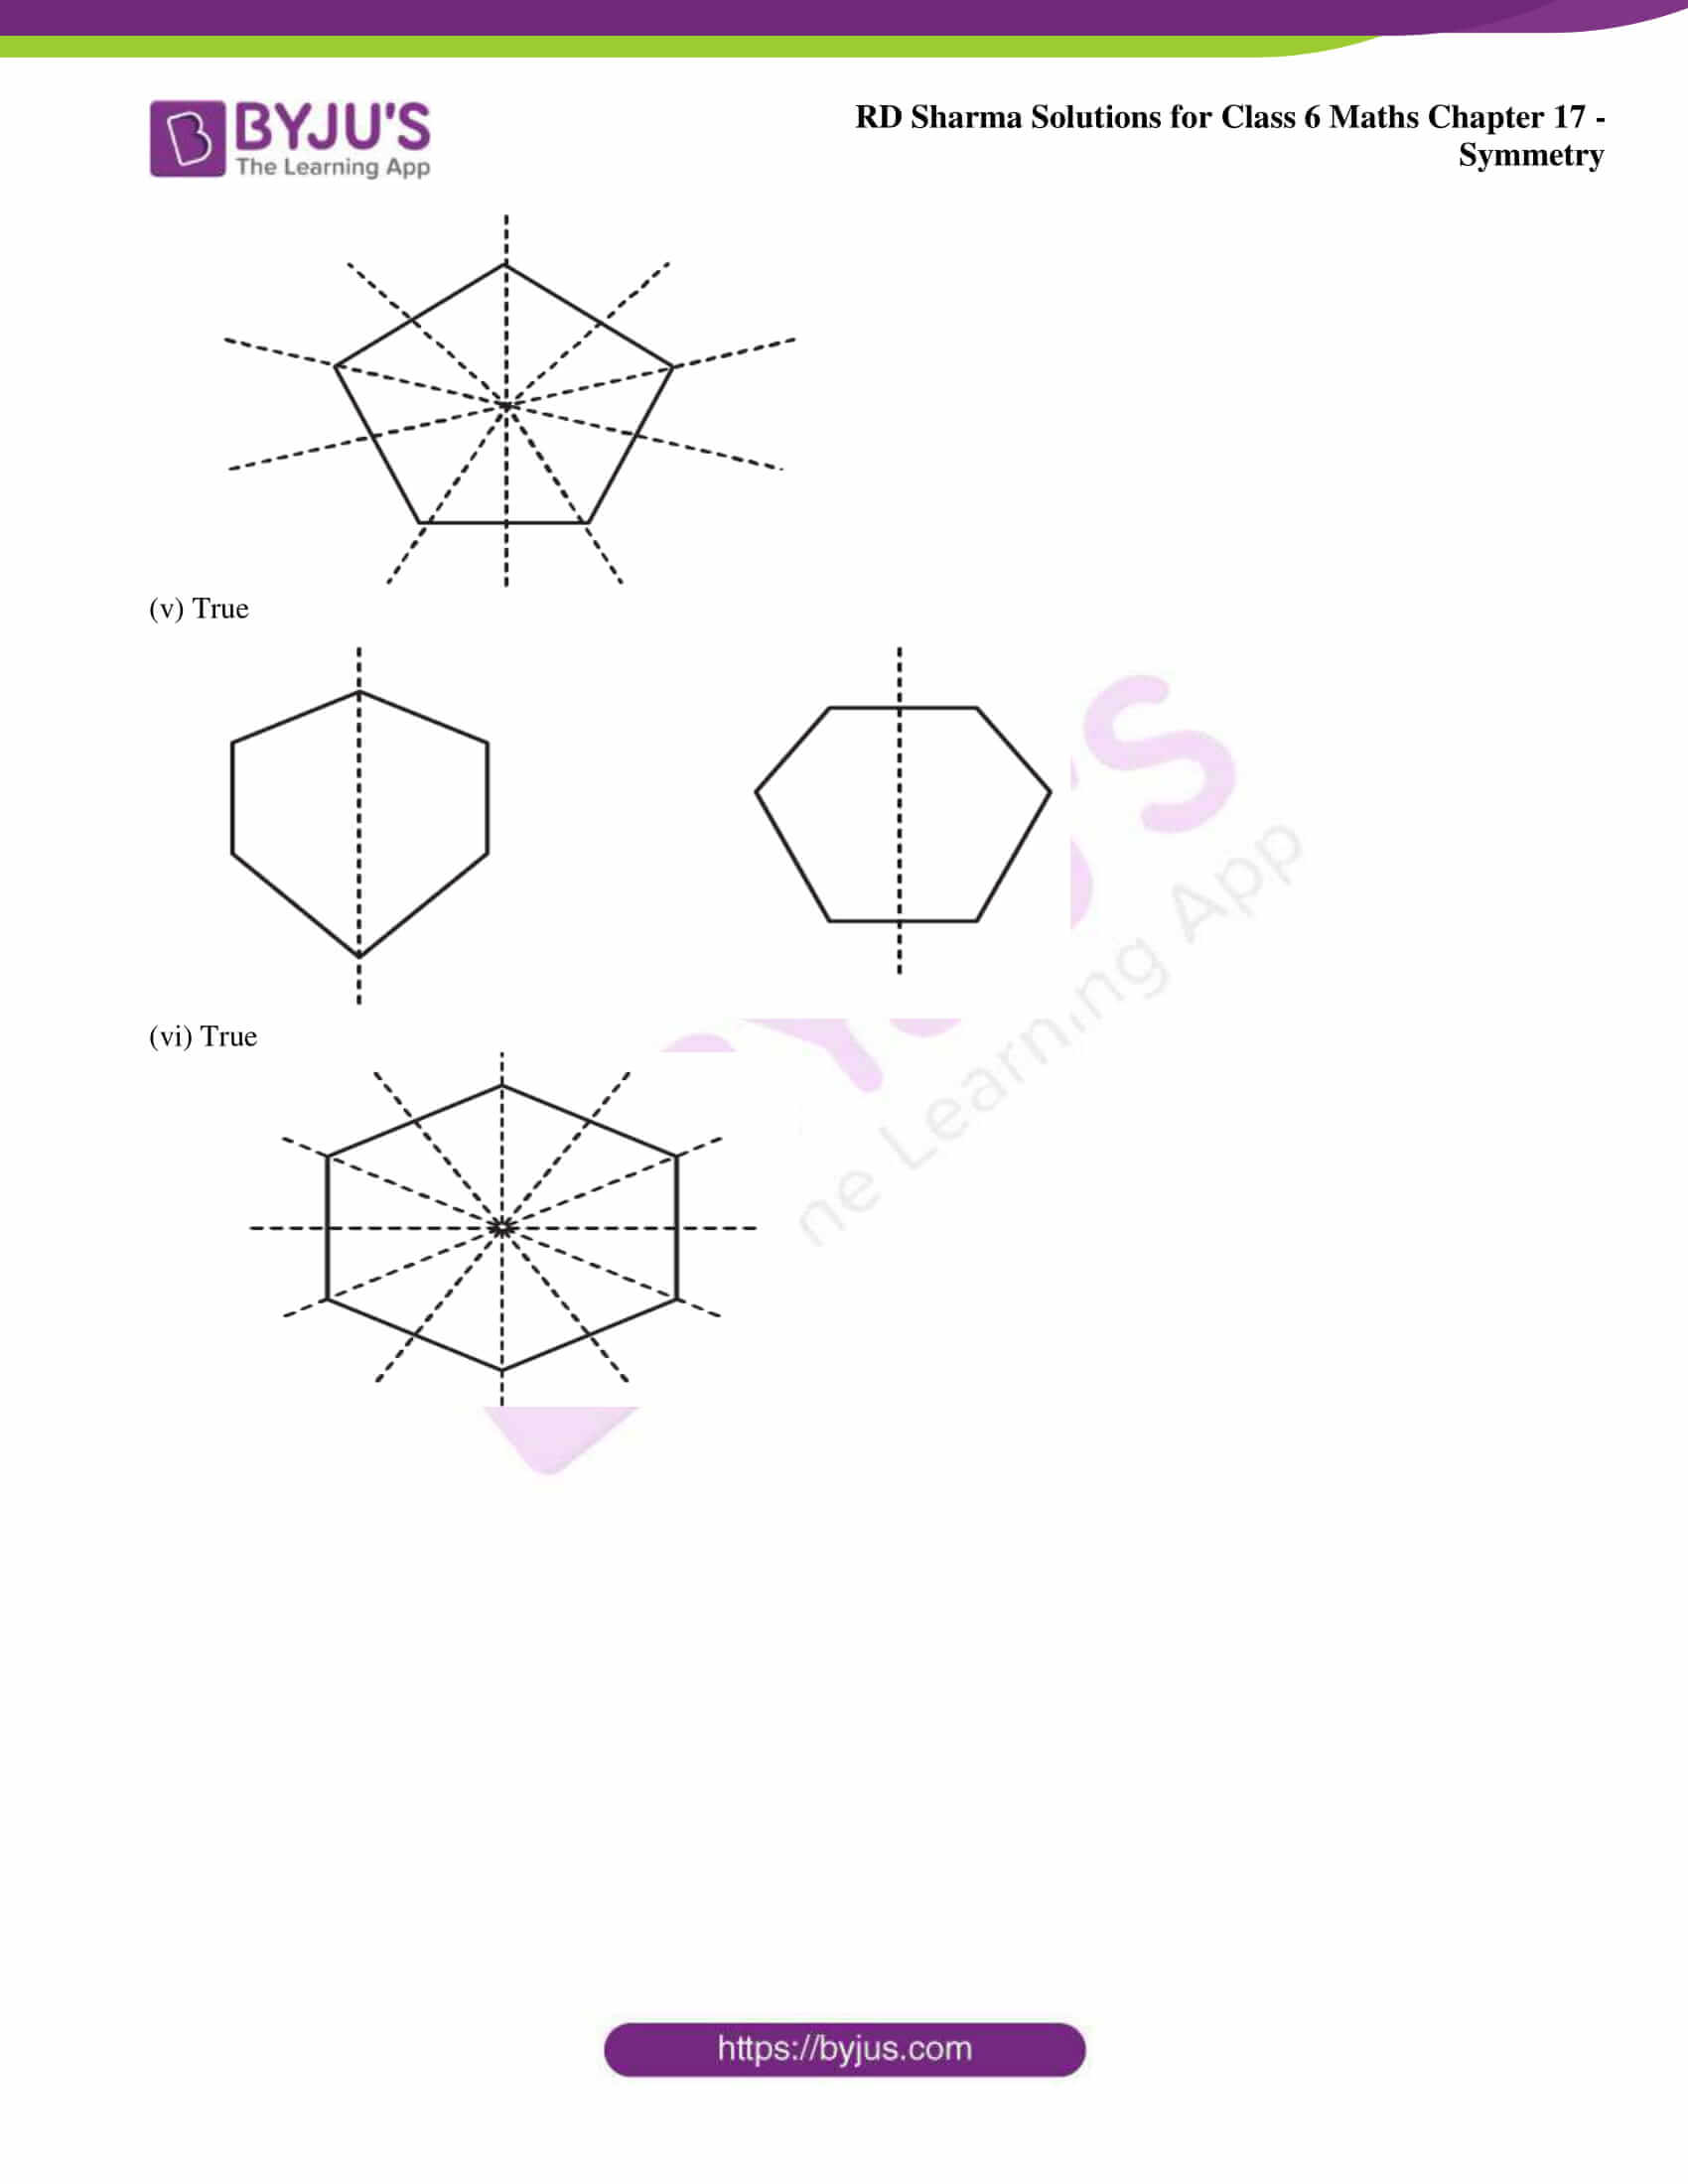 rd sharma solutions nov2020 class 6 maths chapter 17 exercise 3 14